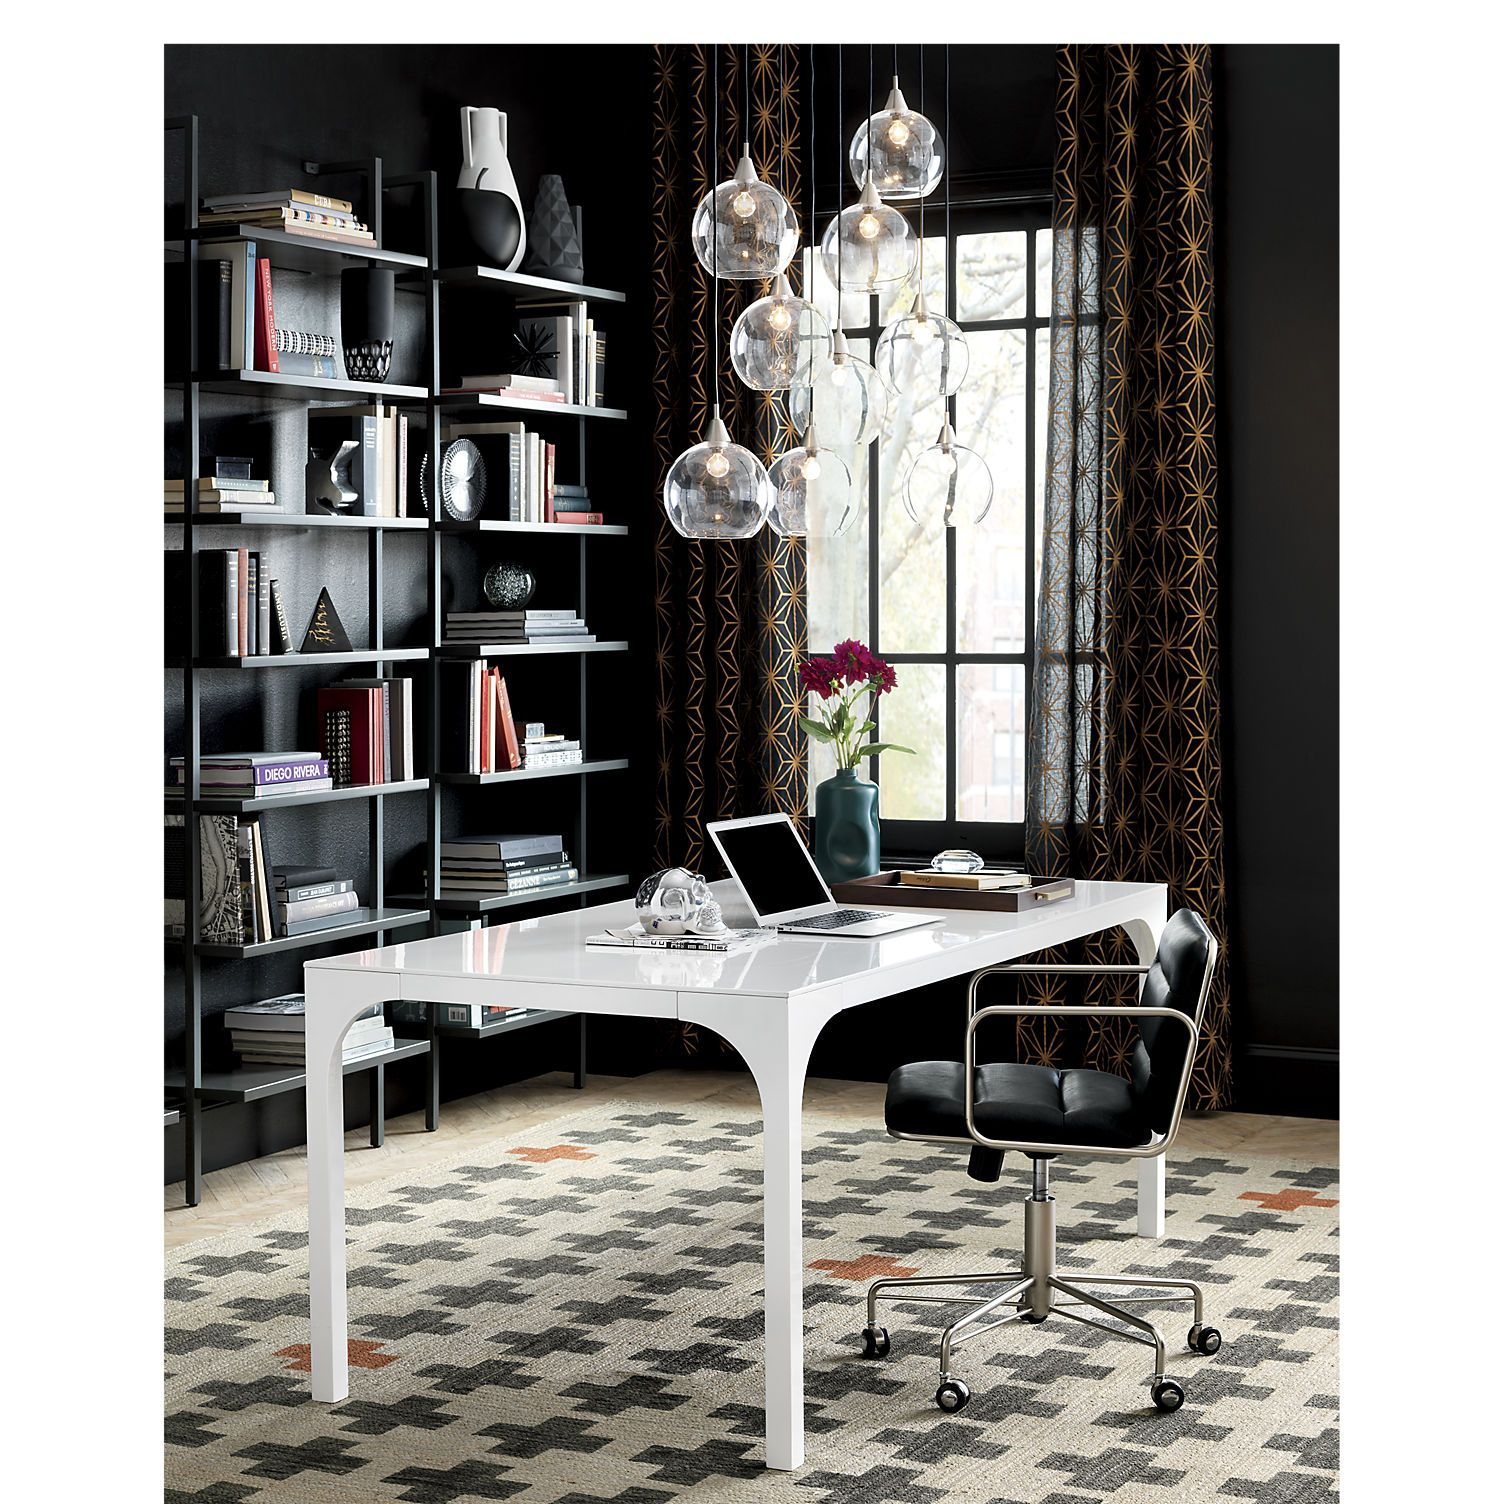 Aqua Virgo Dining Table Guest Room Officeguest